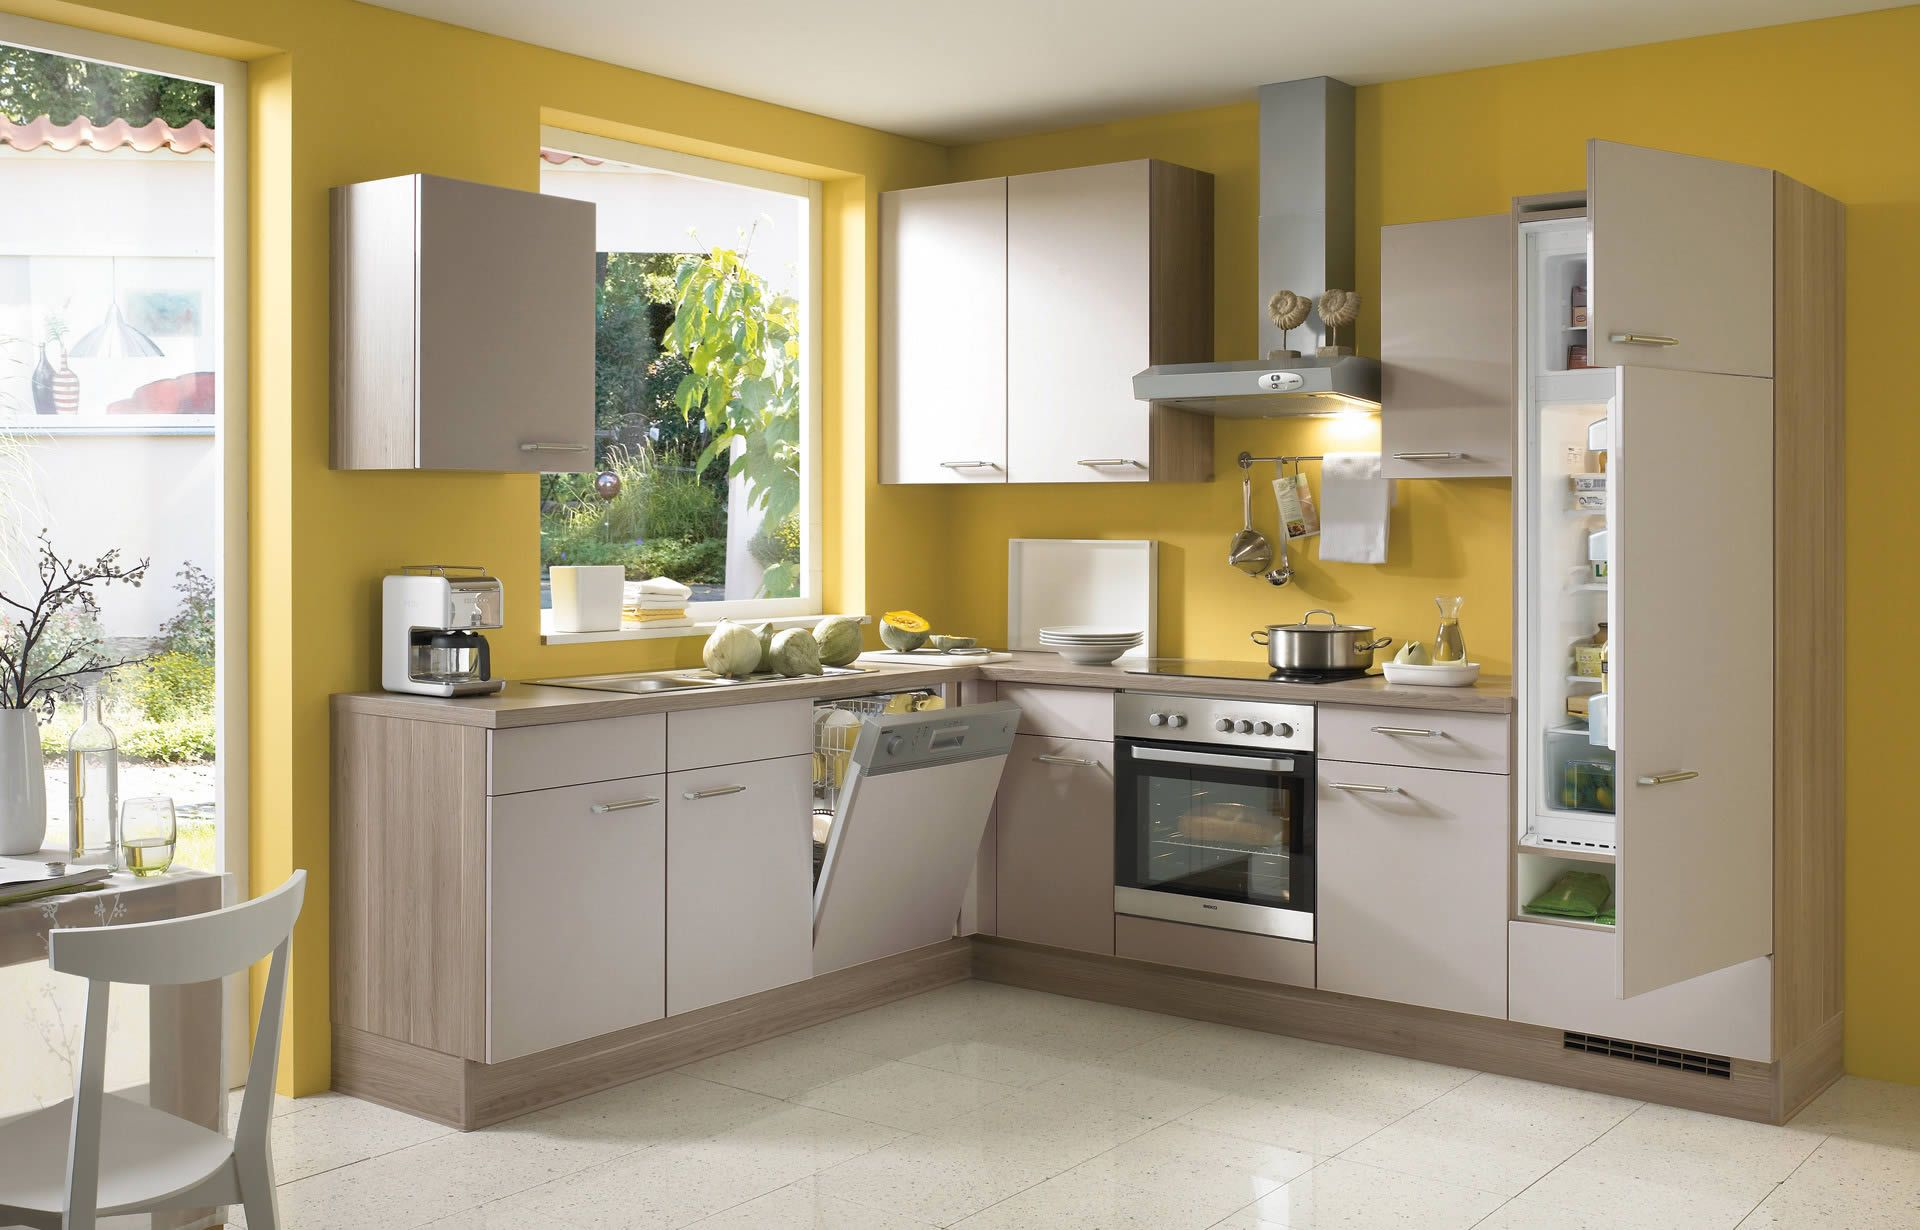 gray cabinets with kitchen yellow walls - mike davies s from White Kitchen  Cabinets Yellow Walls